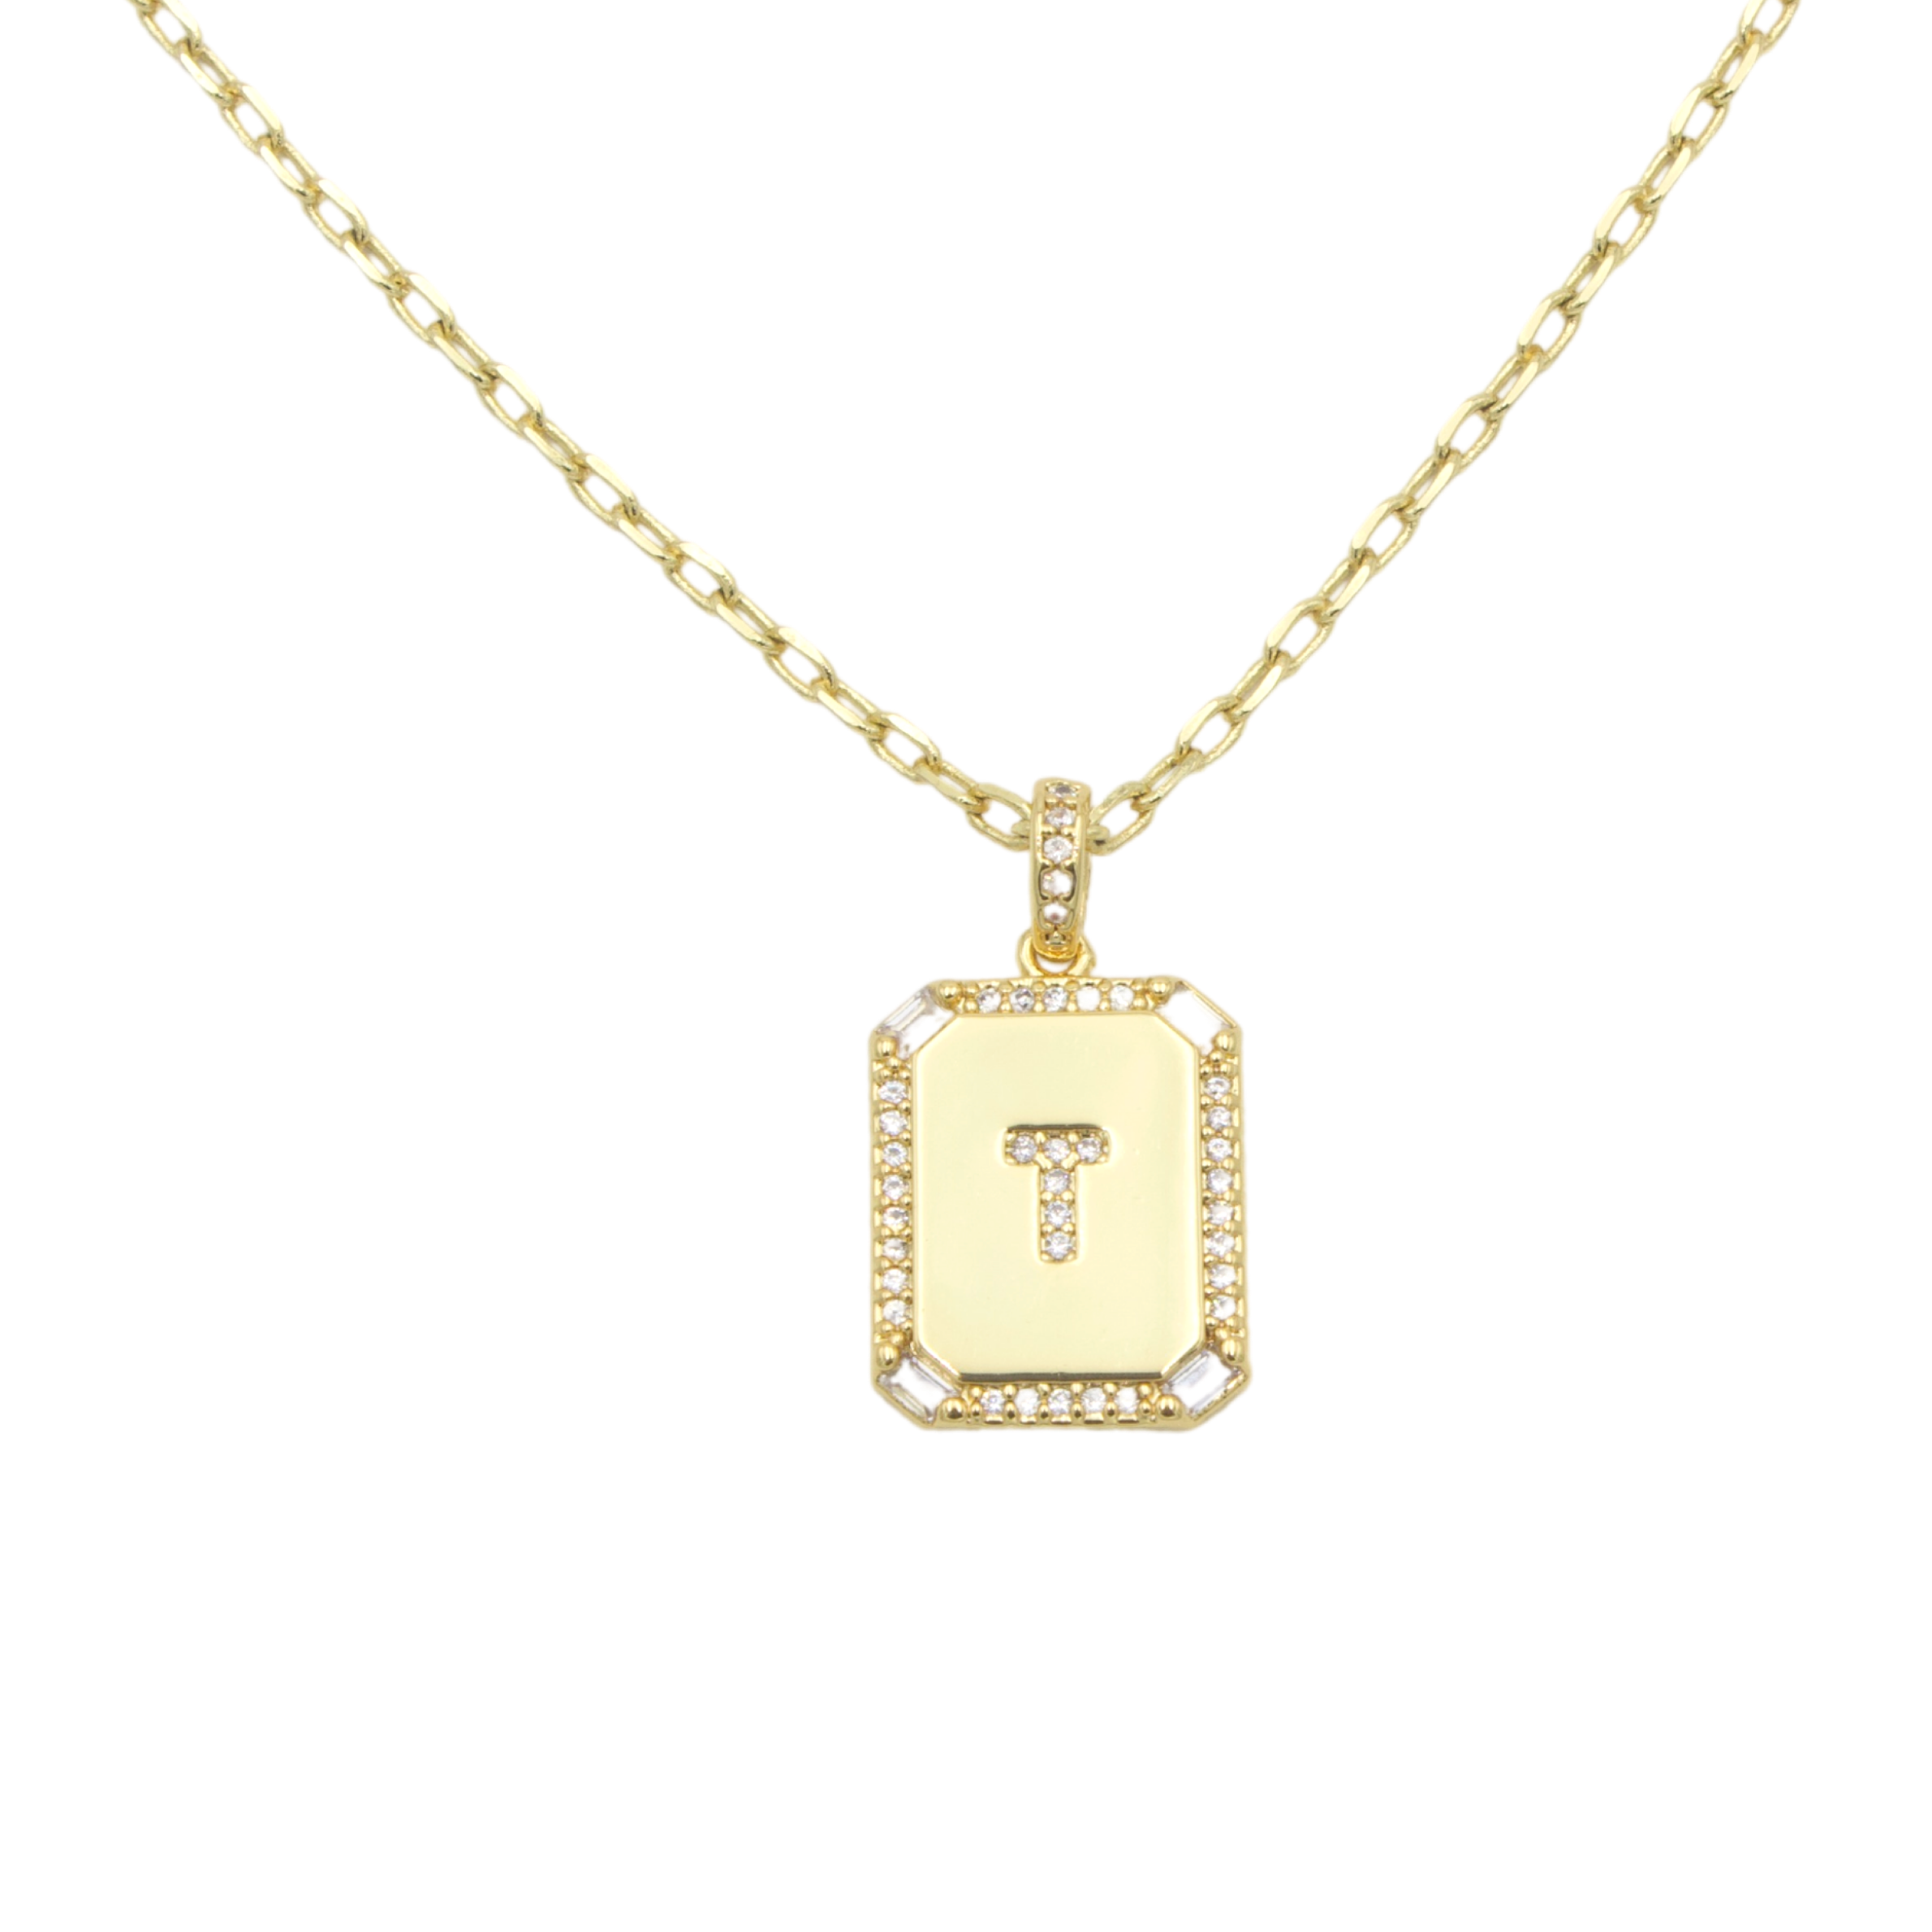 AW Boutique's gold filled 16 inch cable chain necklace finished with a dainty initial pendant with cubic zirconia detail. T initial shown.